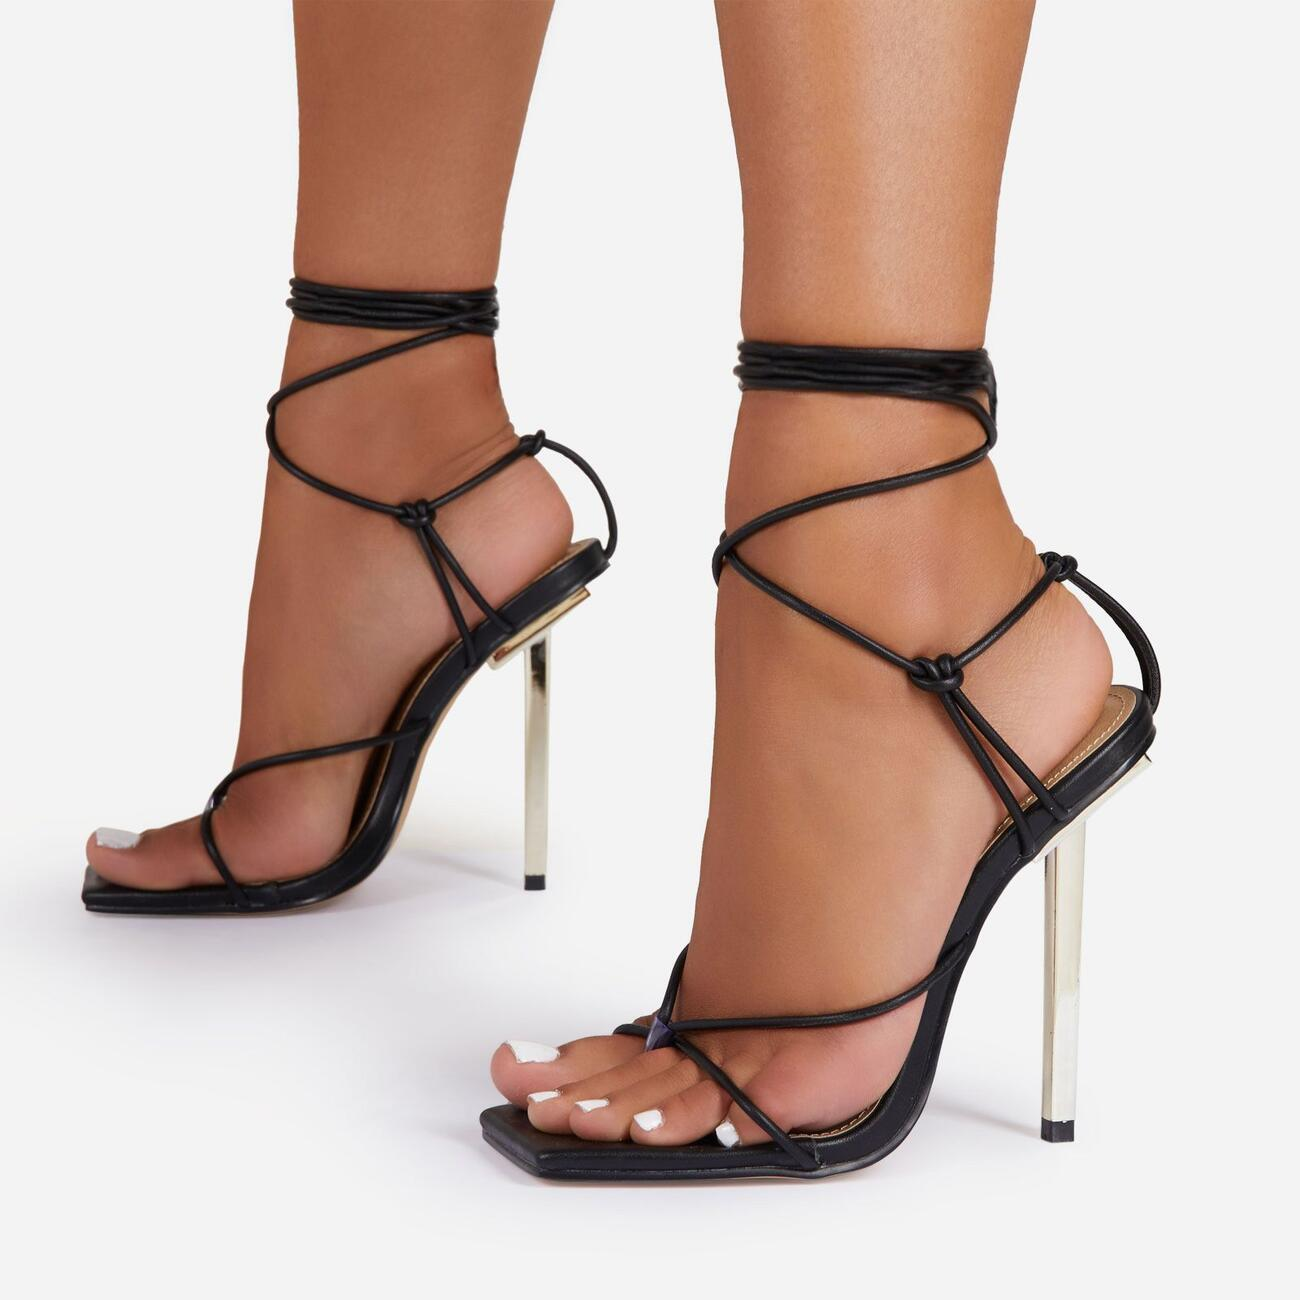 Raven Knotted Detail Lace Up Square Toe Metallic Heel In Black Faux Leather Image 1